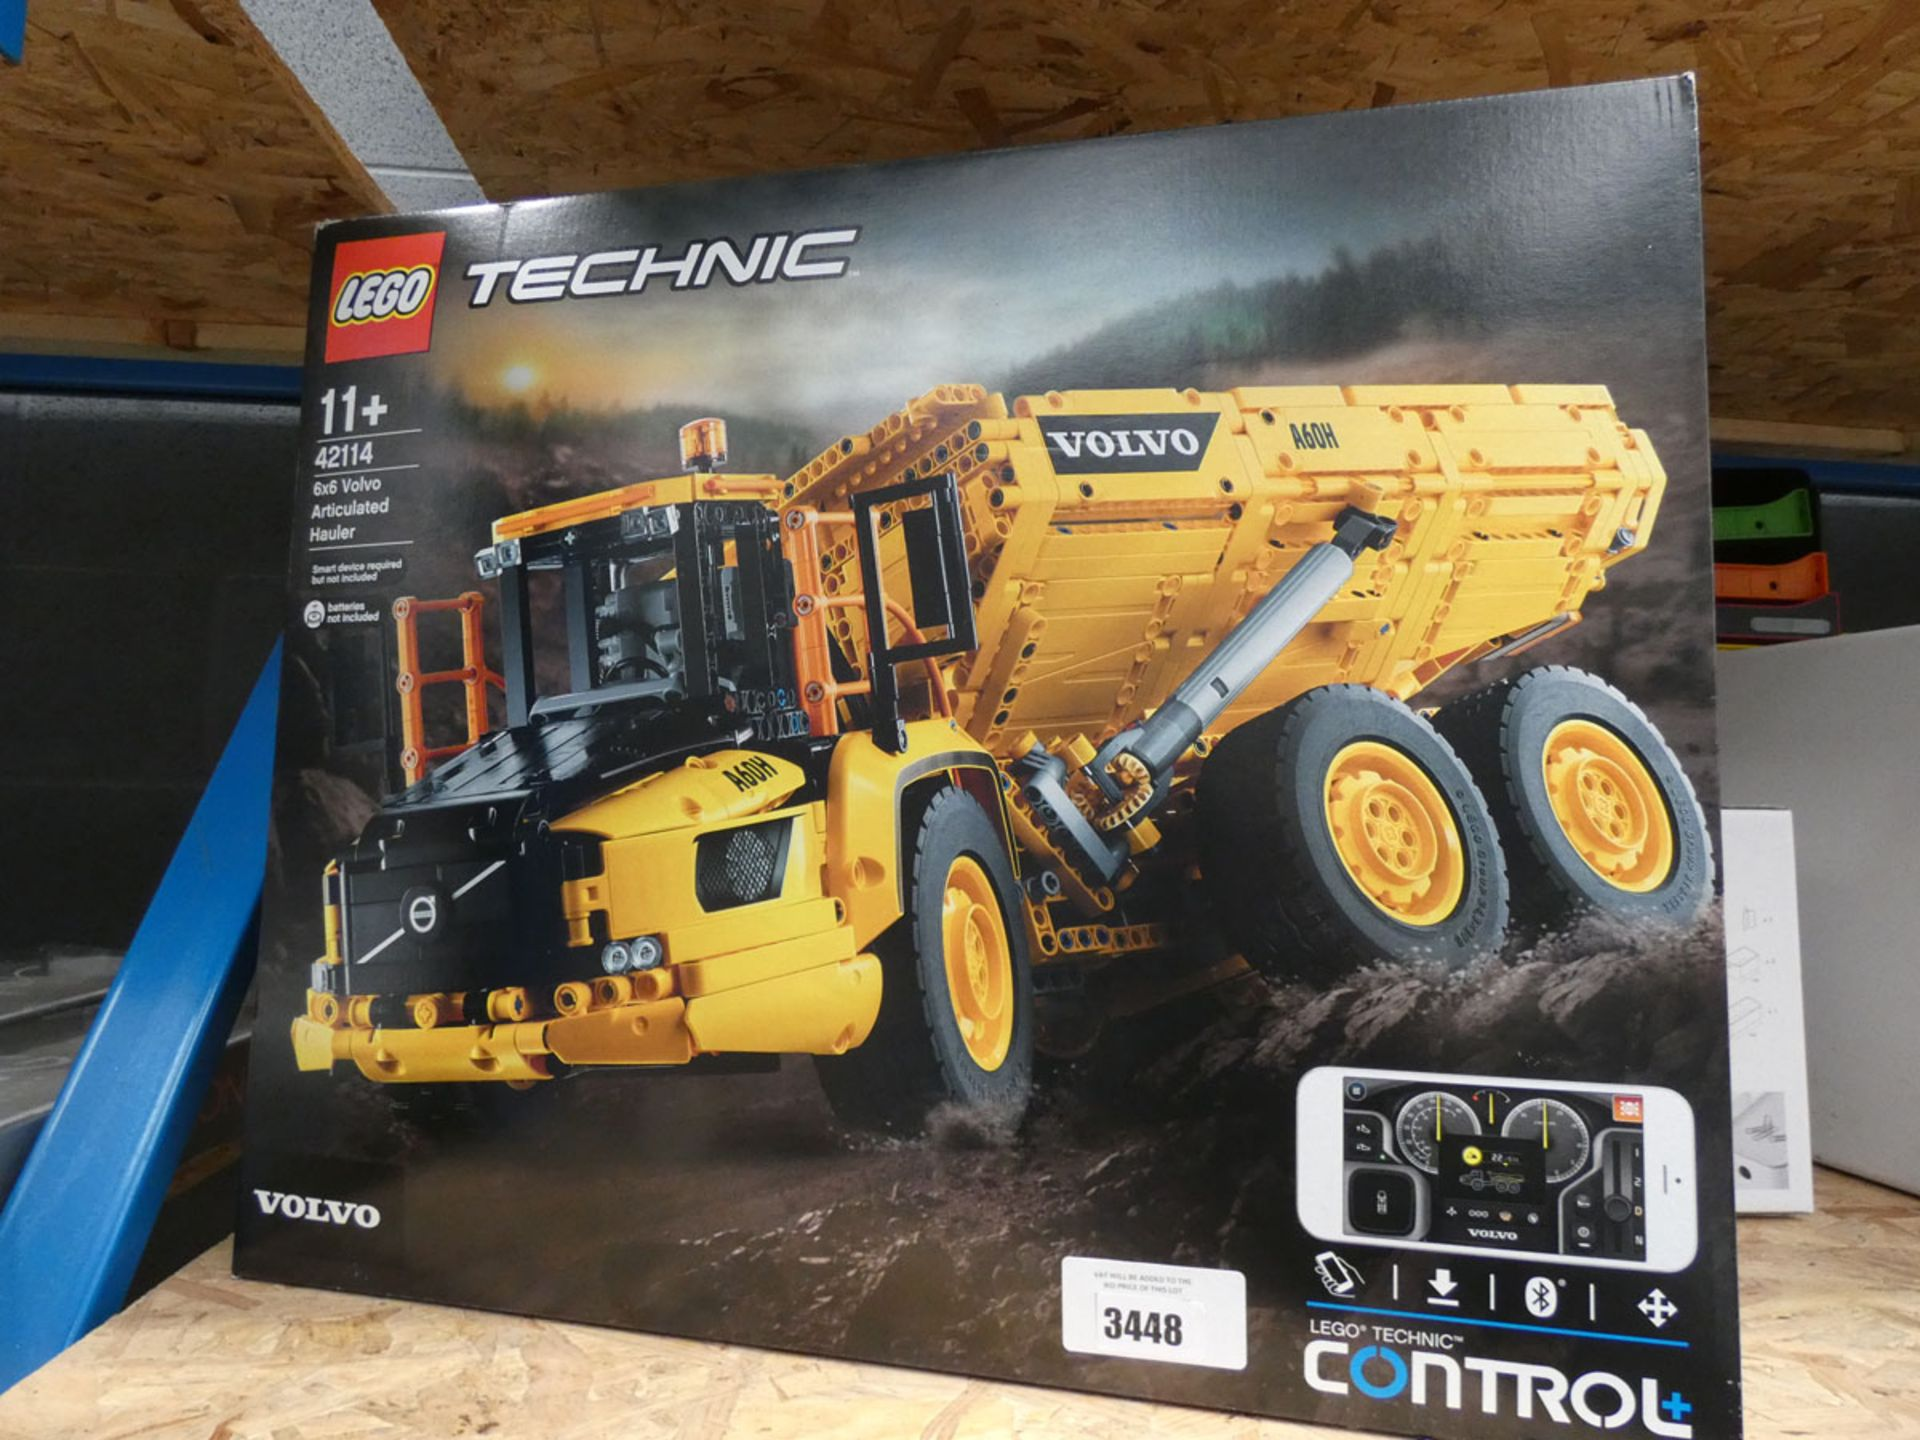 Boxed Lego Technic 6x6 Volvo articulated hauler